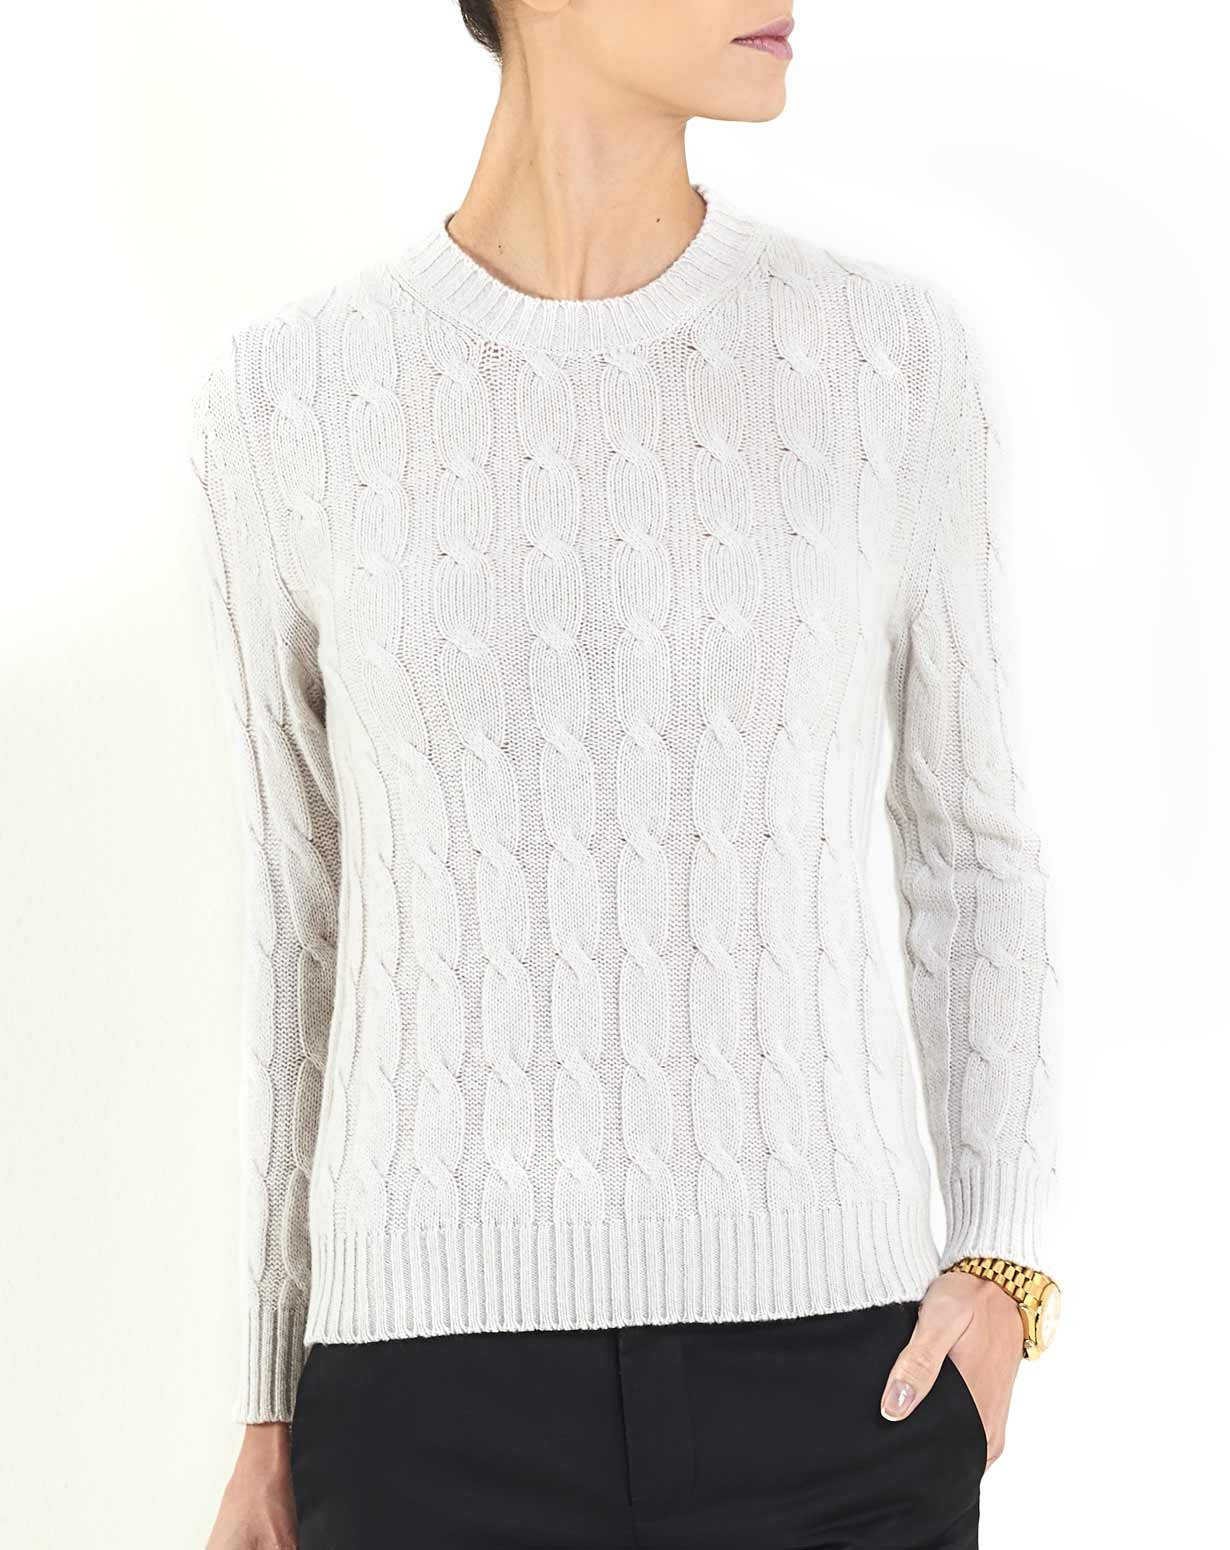 Women's Cashmere Cable Knit Crew Neck